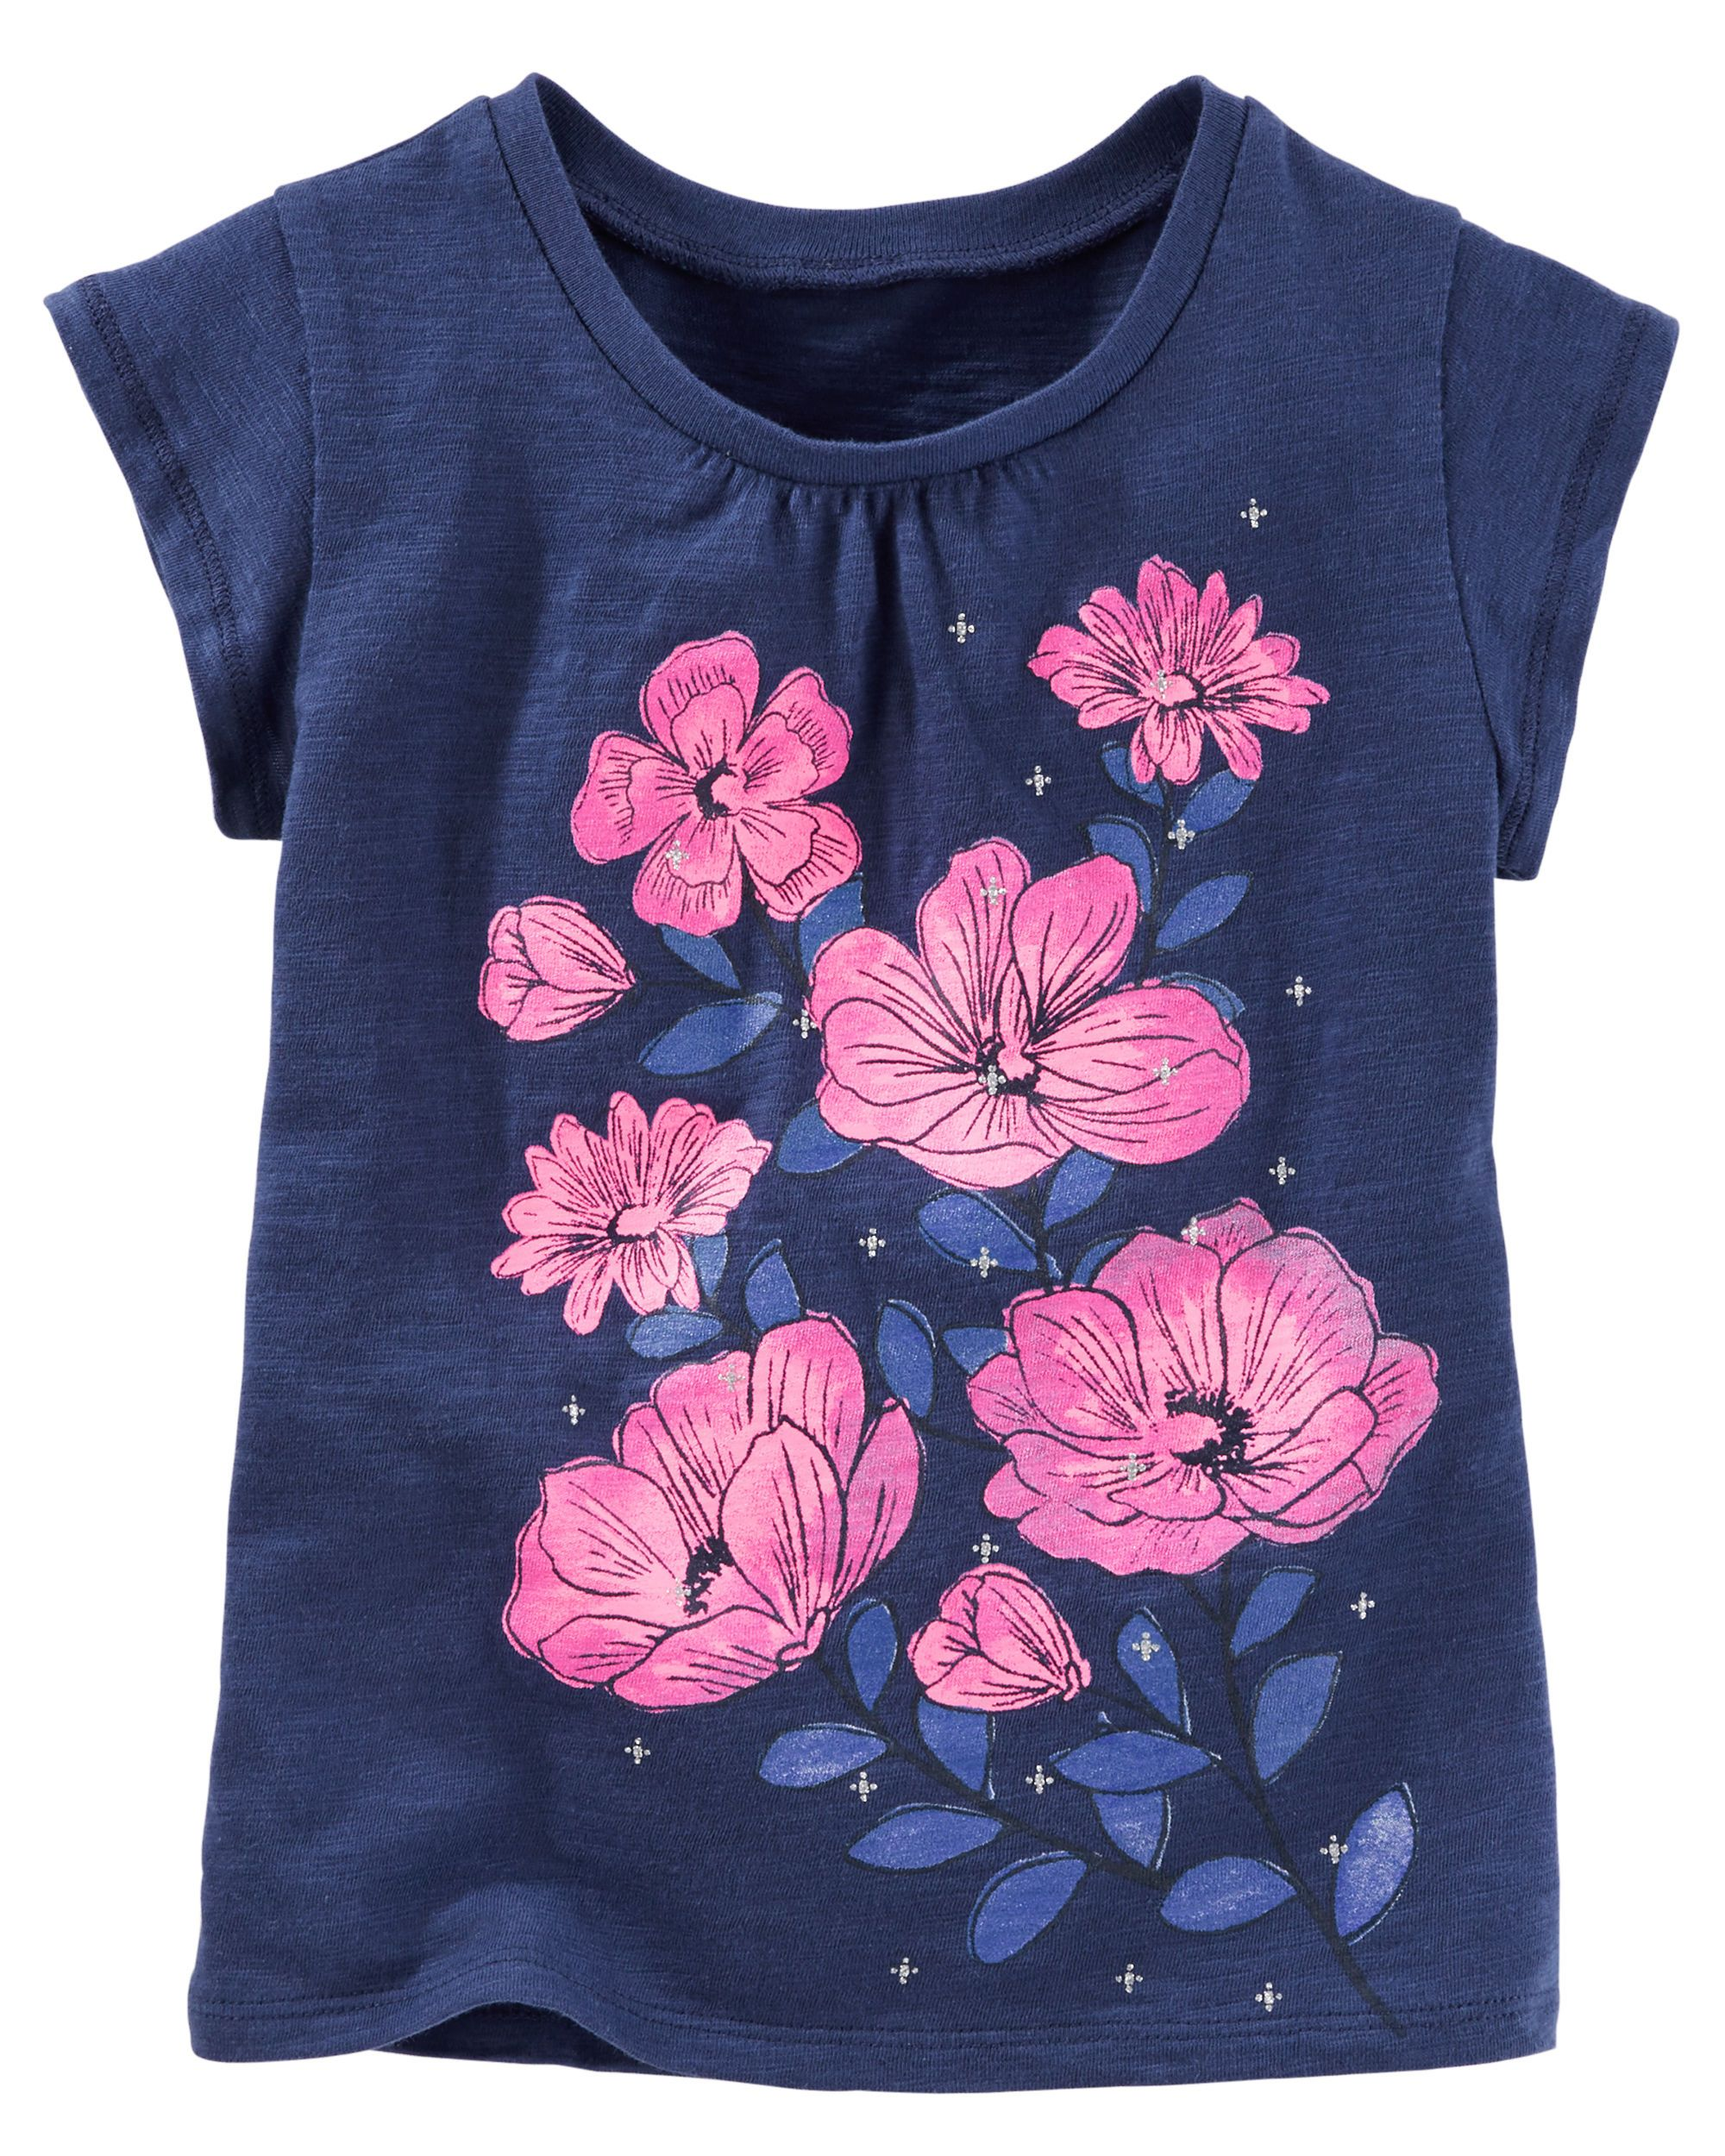 Sparkle Flower Tee | Babies clothes, Toddler girls and Kids girls